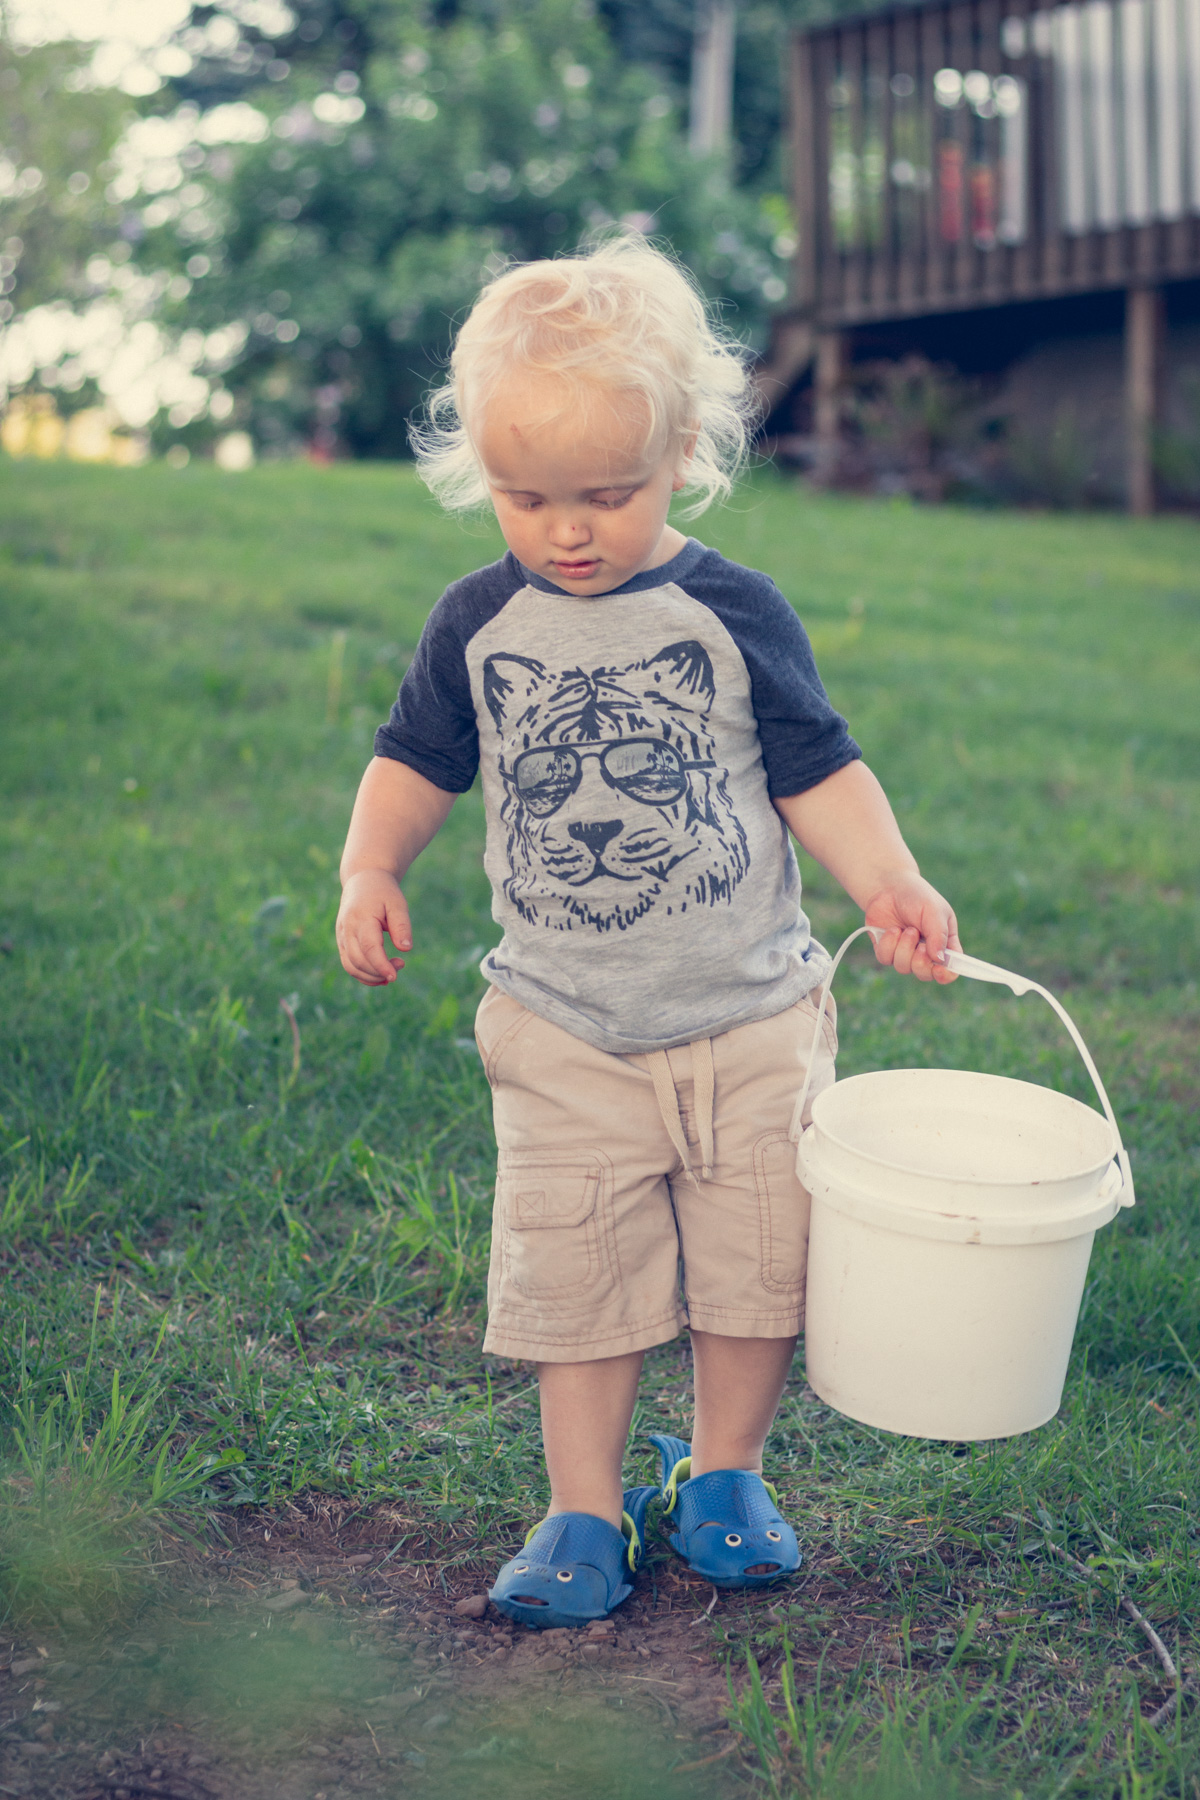 Blond boy carrying bucket outside